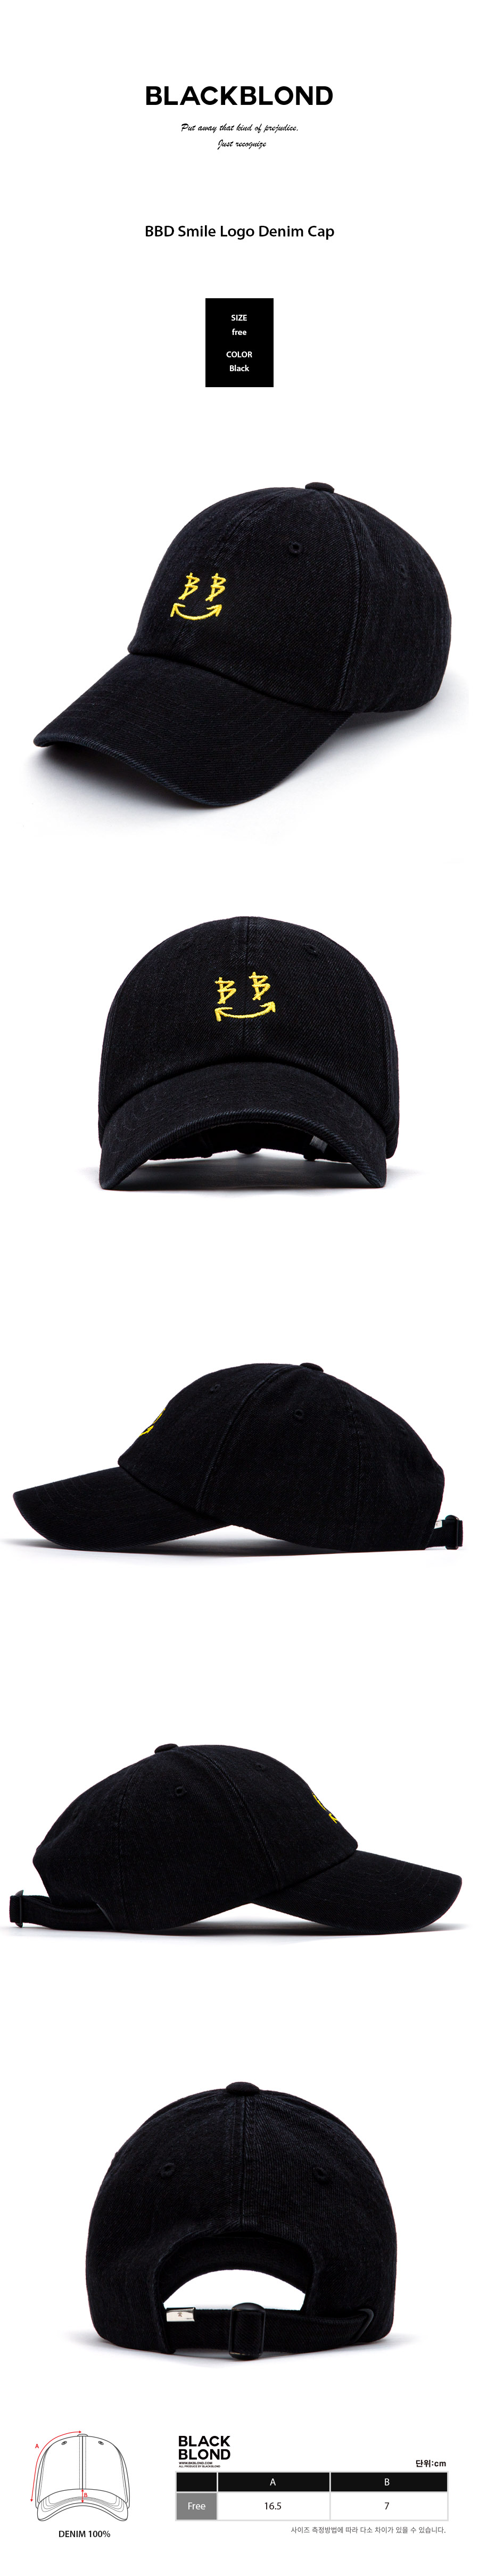 BLACKBLOND - BBD Smile Logo Denim Cap (Black)